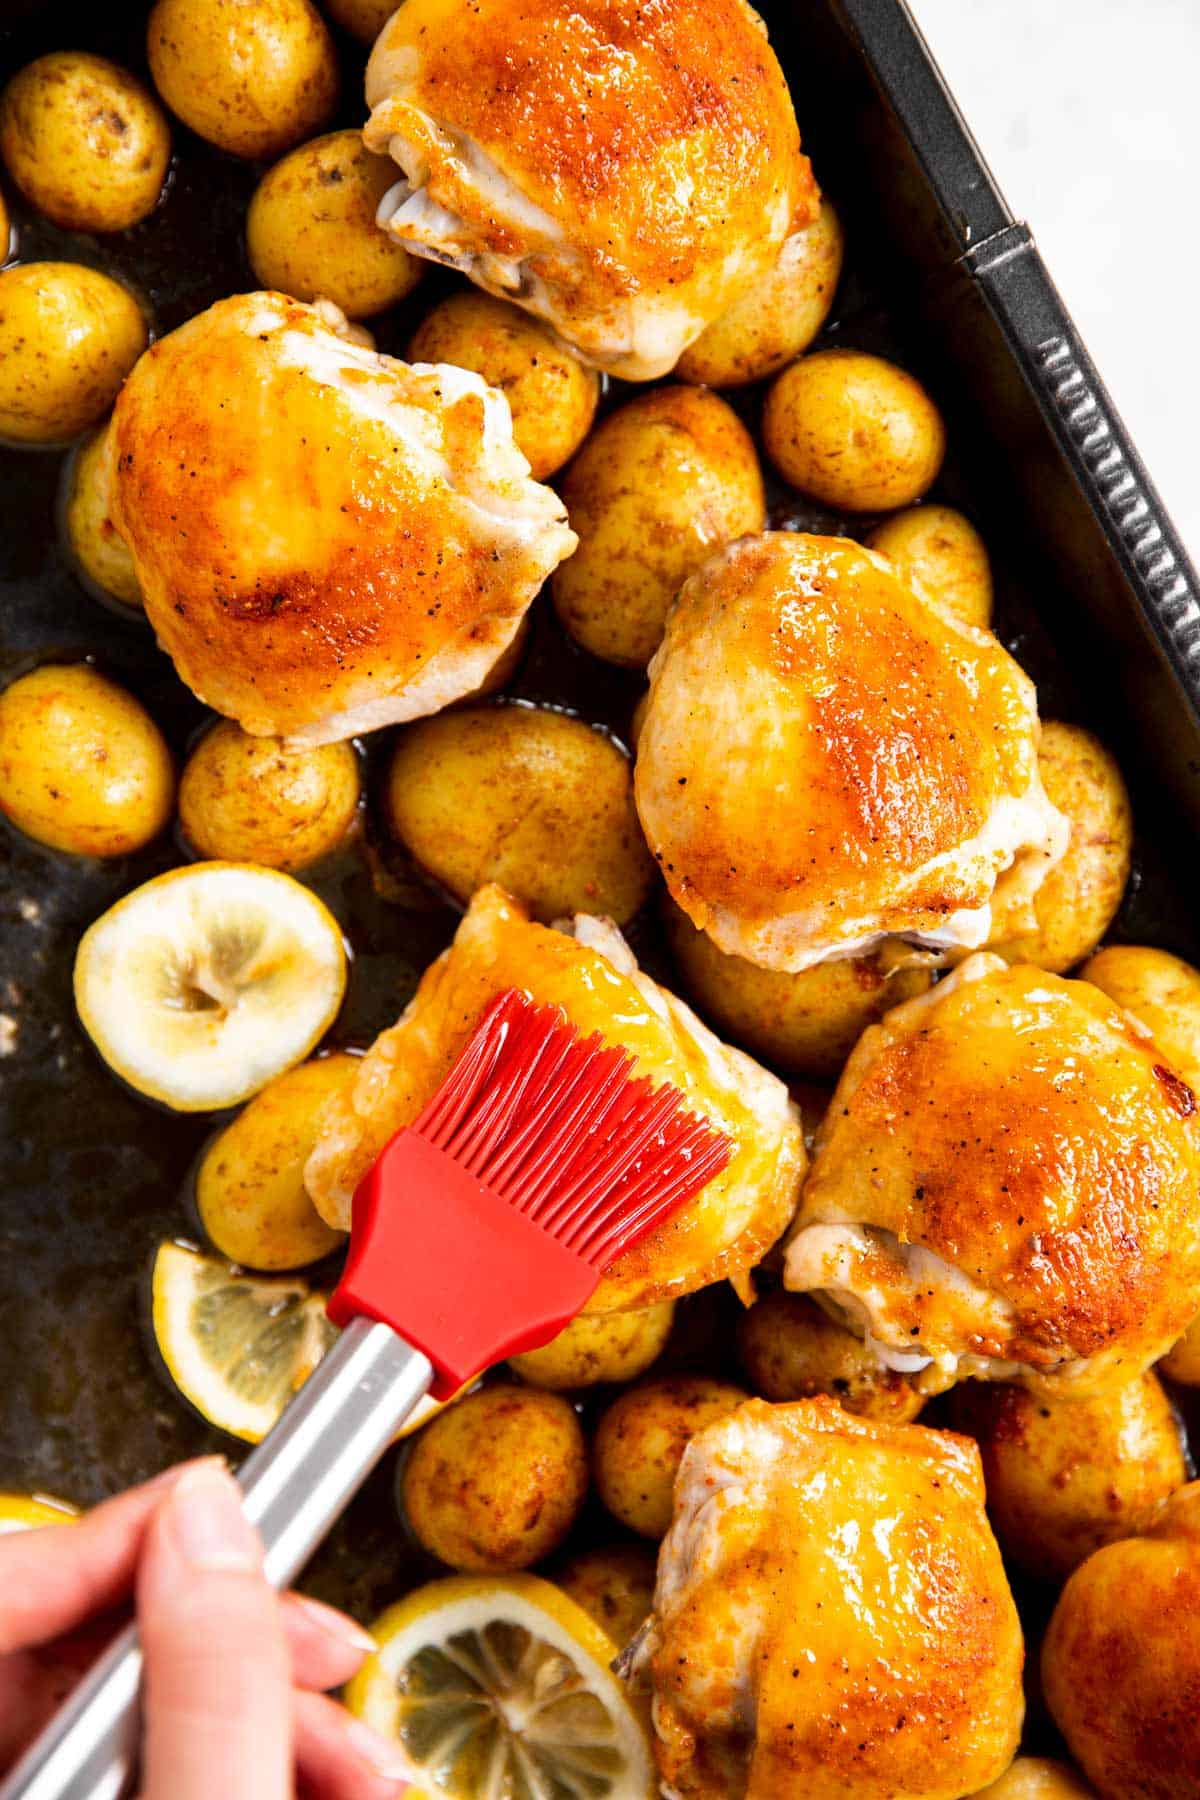 basting chicken thighs with red pastry brush